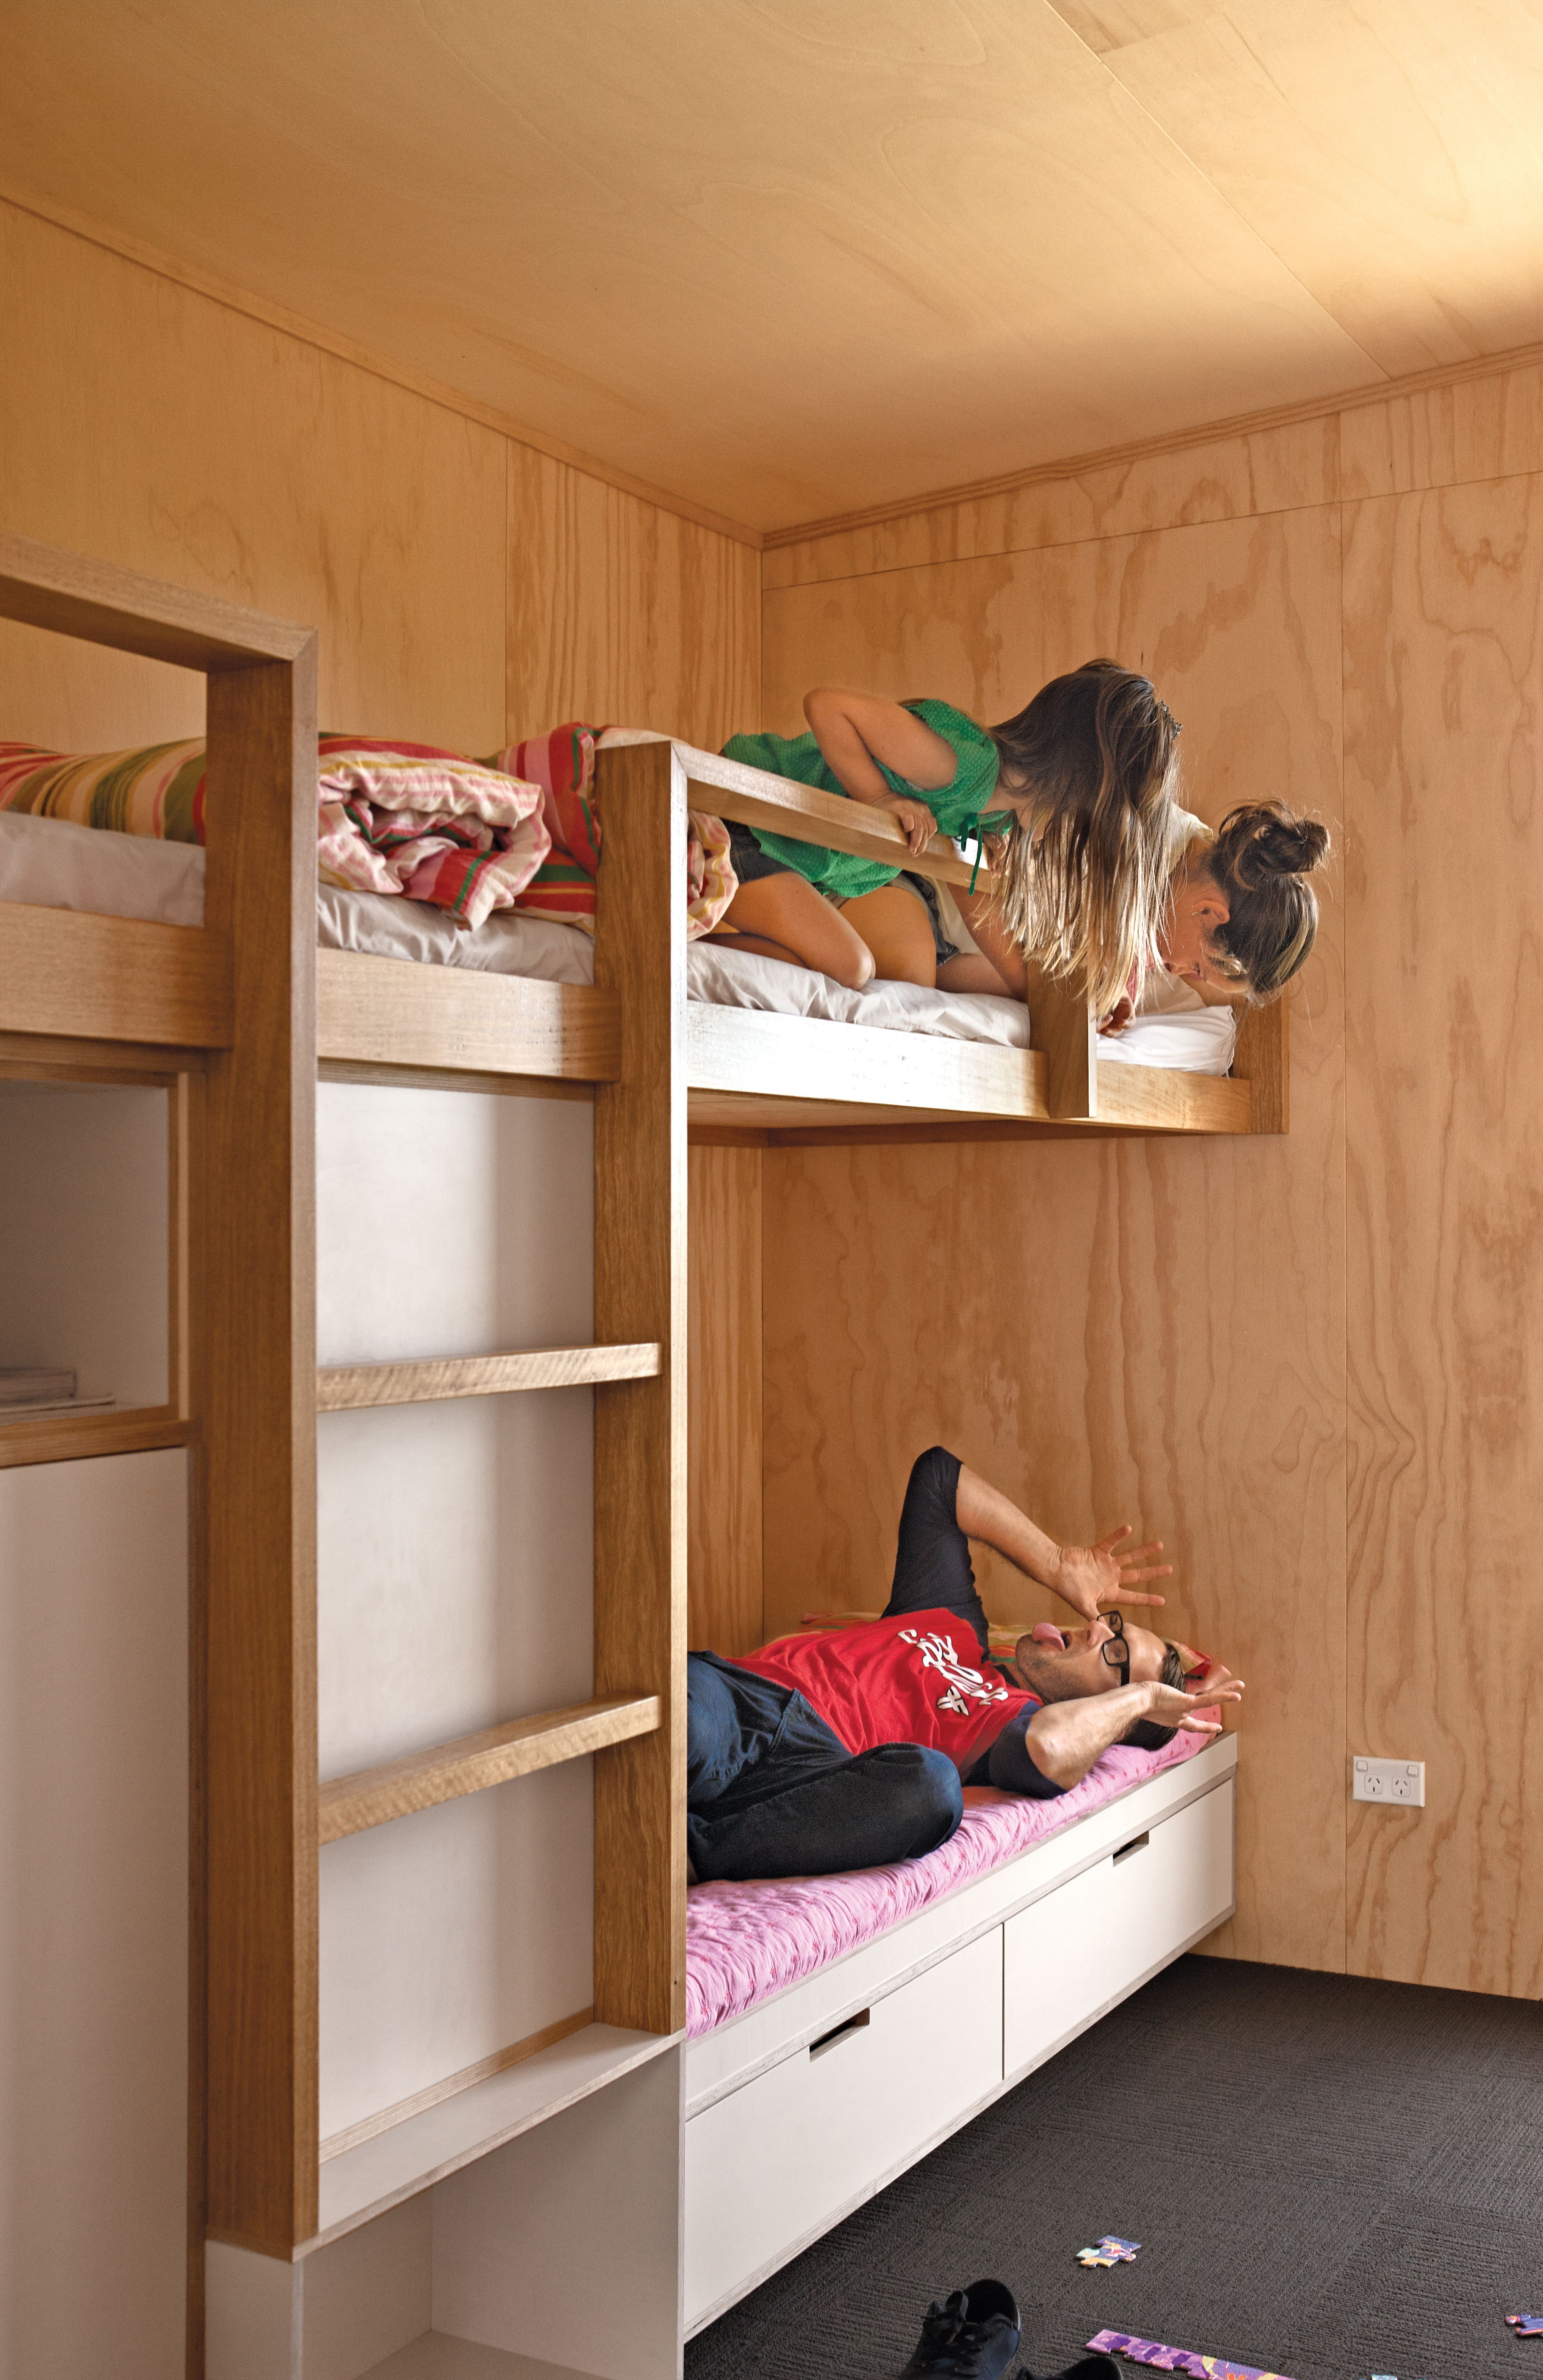 In A Compact New Zealand Beach House, Space Saving Bunk Beds Offer A Fun  Place For The Kids To Retire In The Evening. Photo By Simon Devitt.